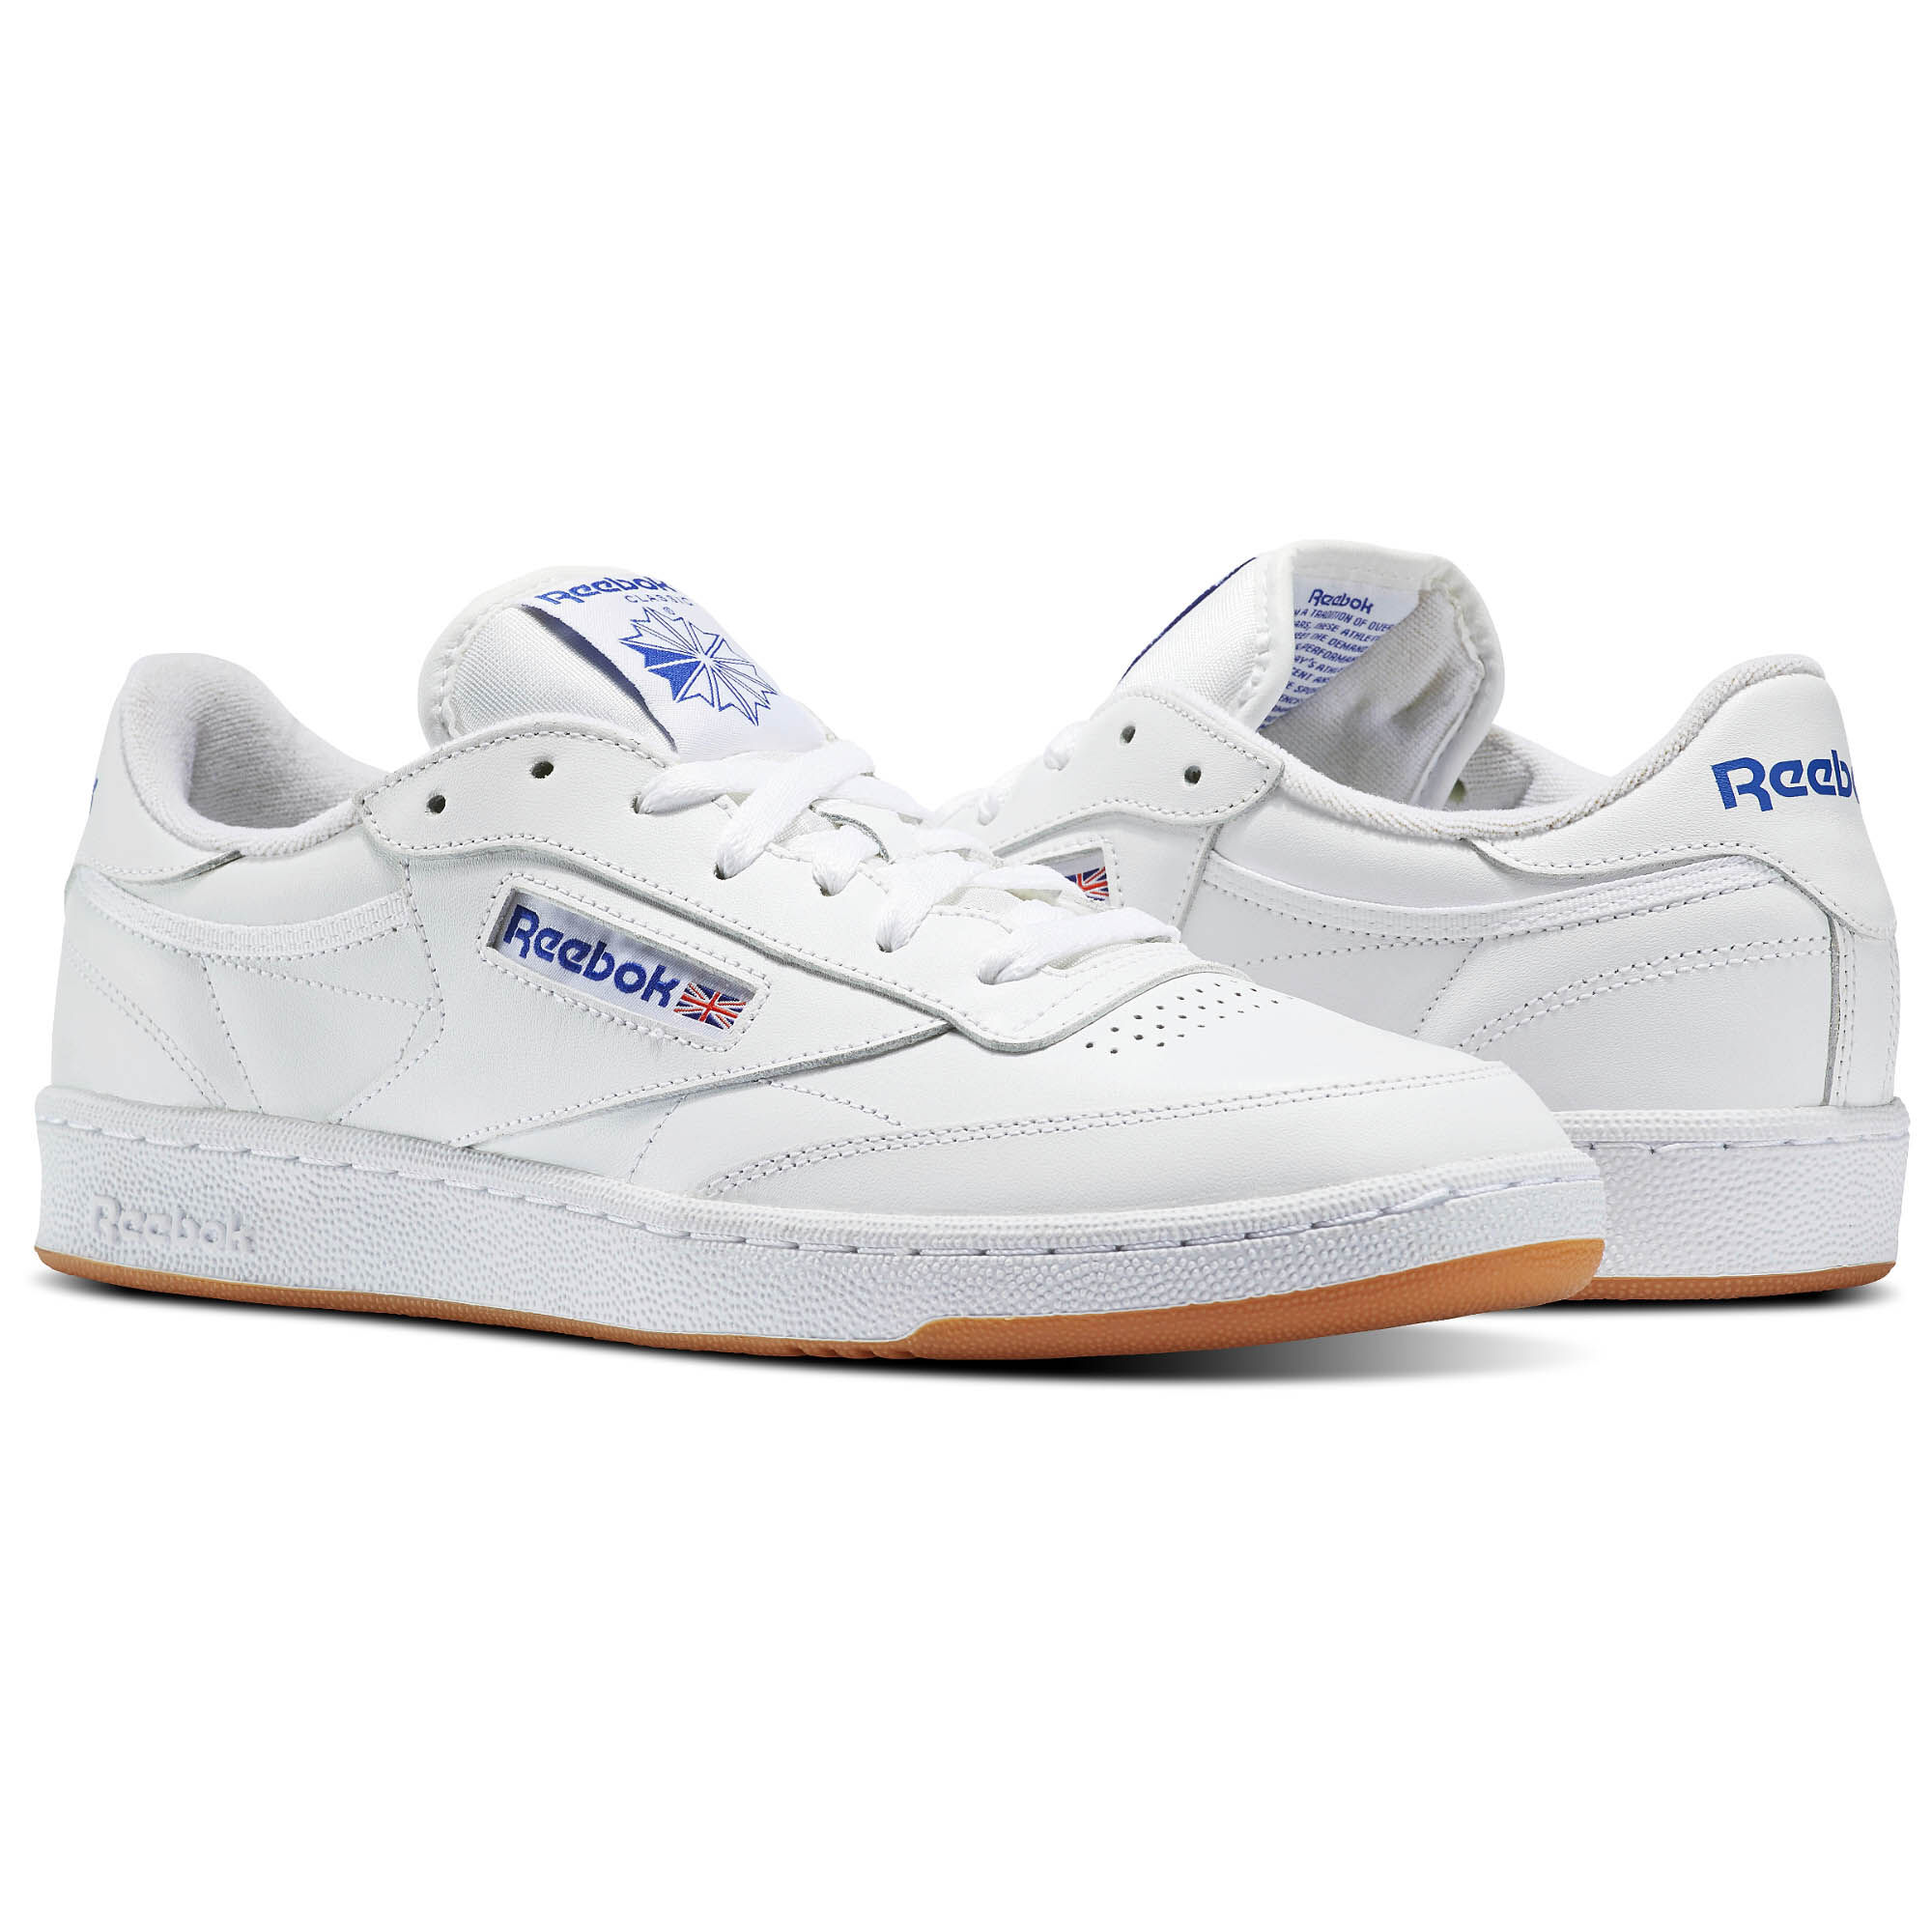 Reebok - Club C 85 Intense White/Royal-Gum AR0459